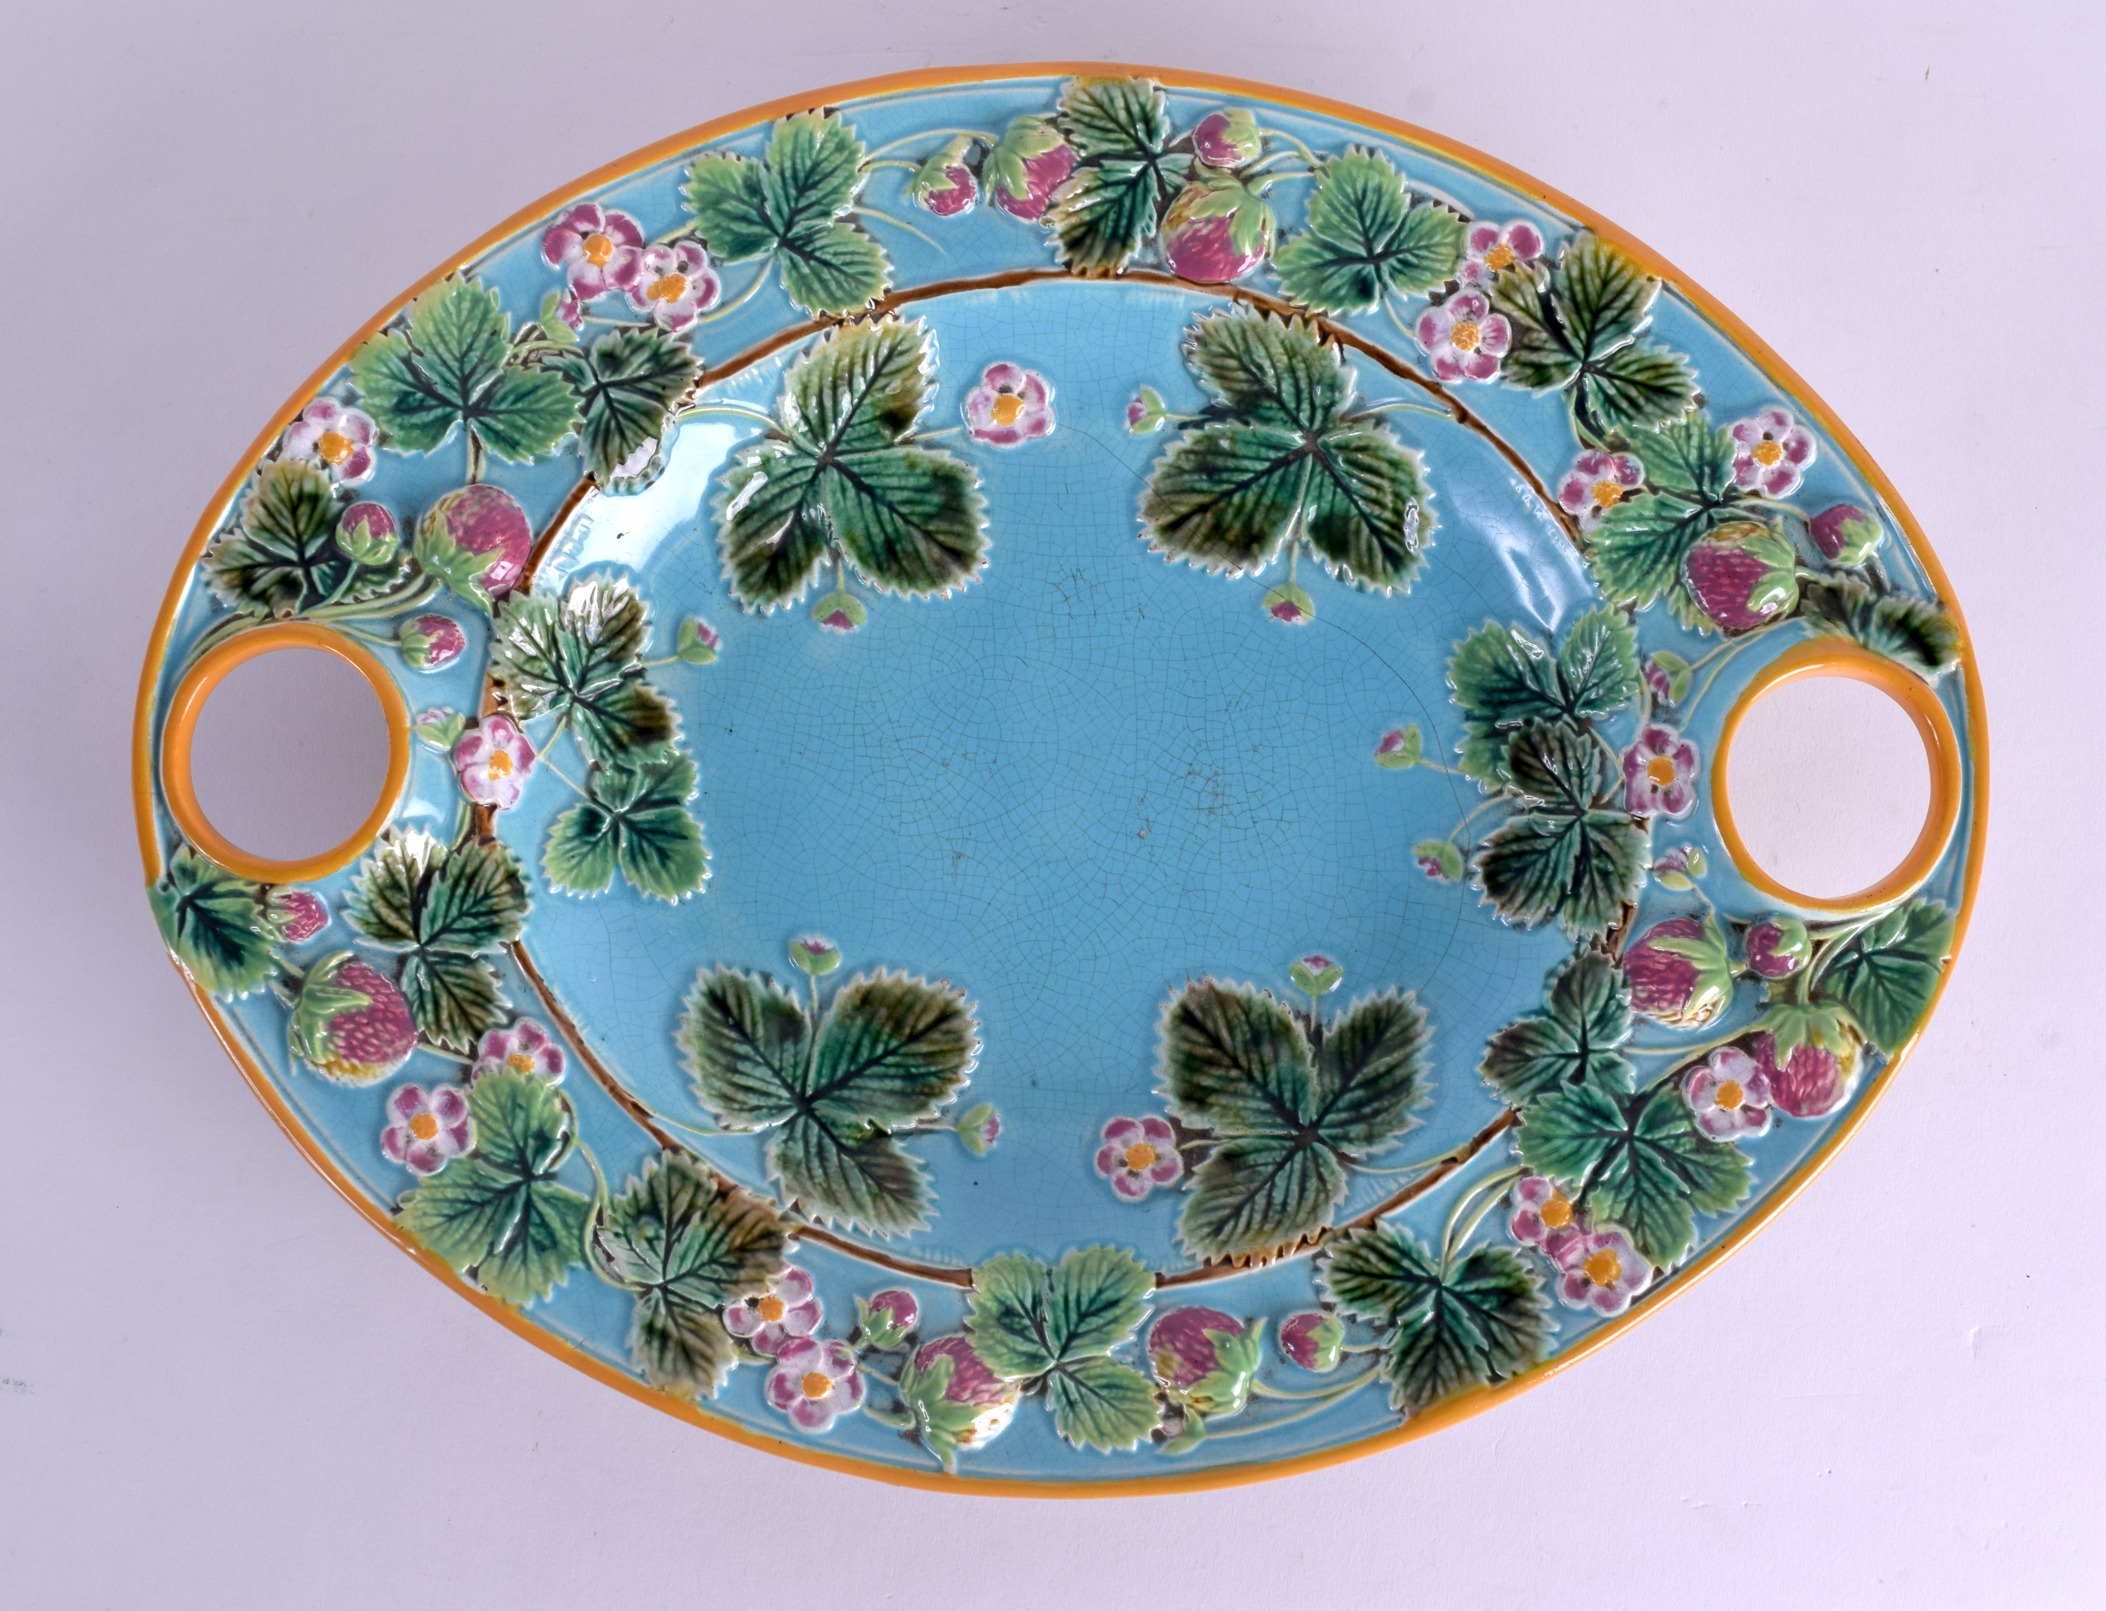 Lot 96 - A LARGE VICTORIAN GEORGE JONES TWIN HANDLED STRAWBERRY DISH decorated with fruiting vines. 37 cm x